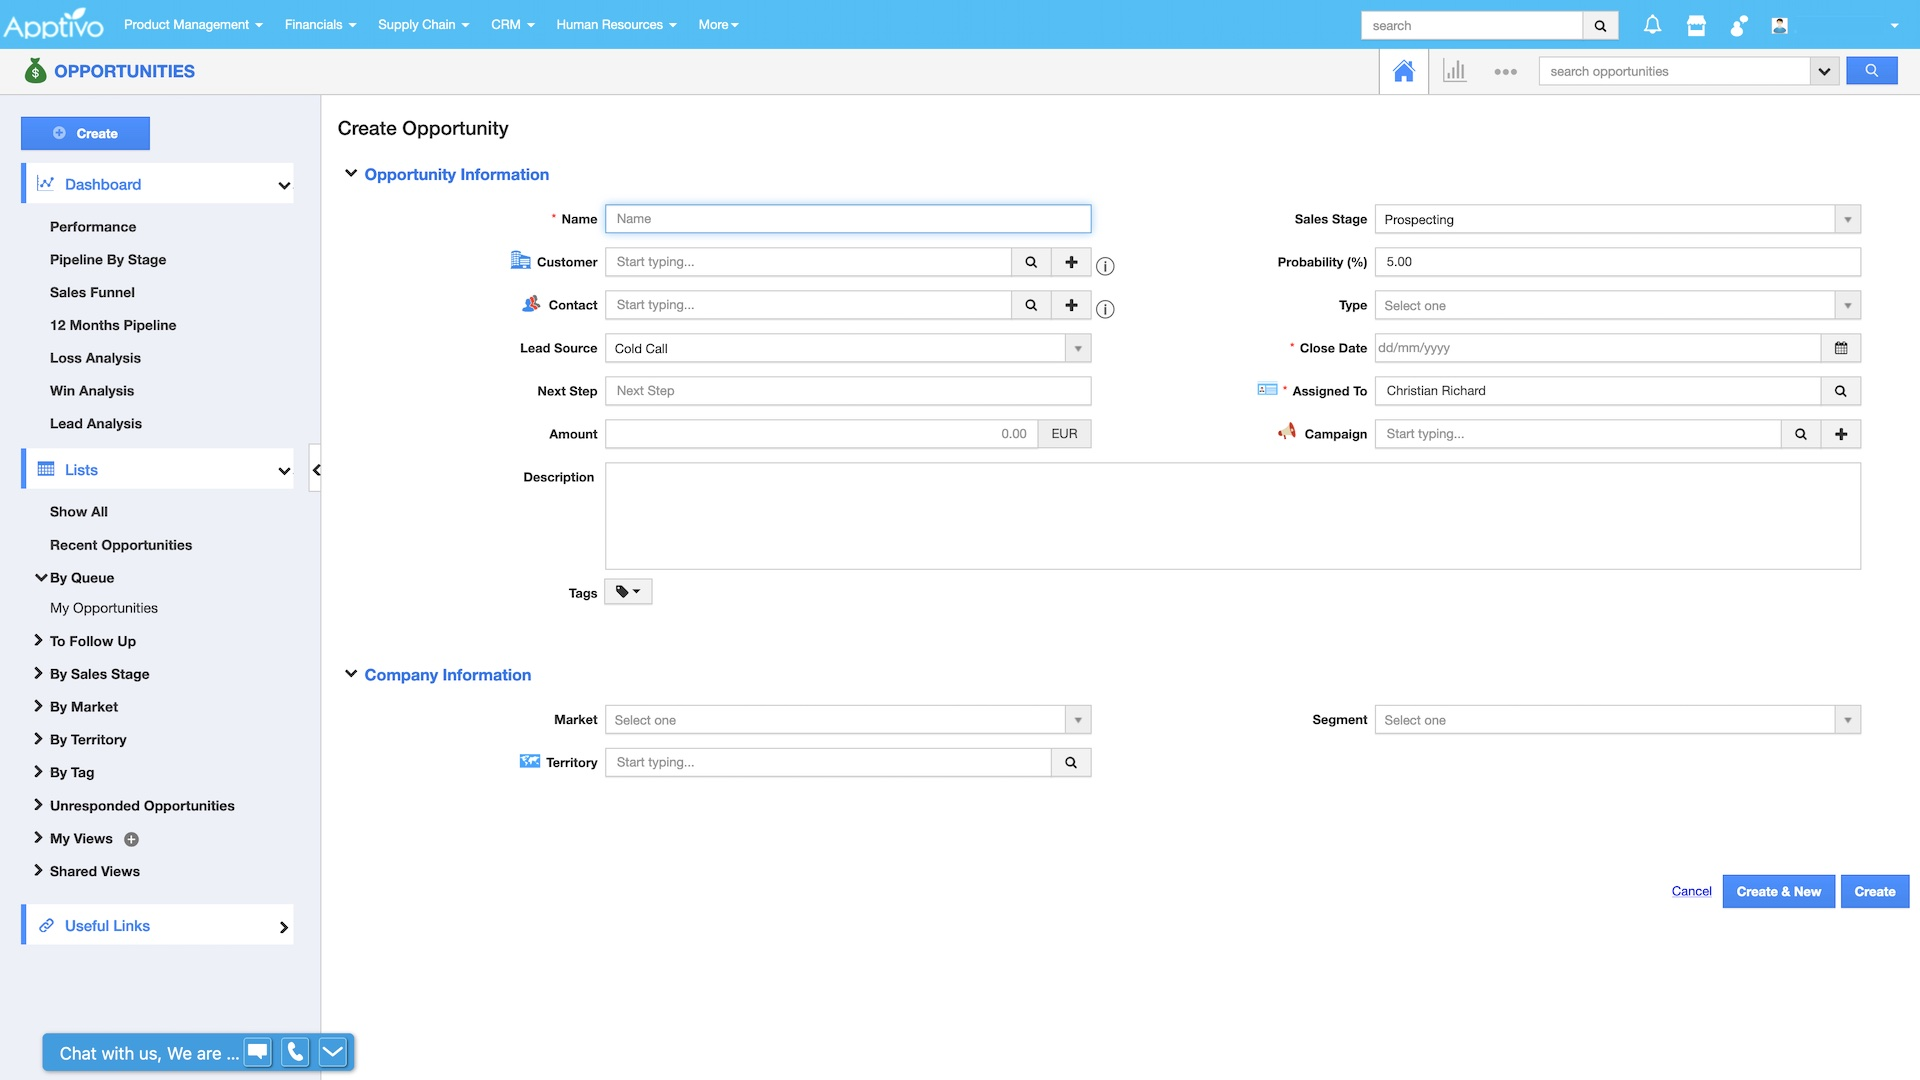 Apptivo's user interface being demonstrated